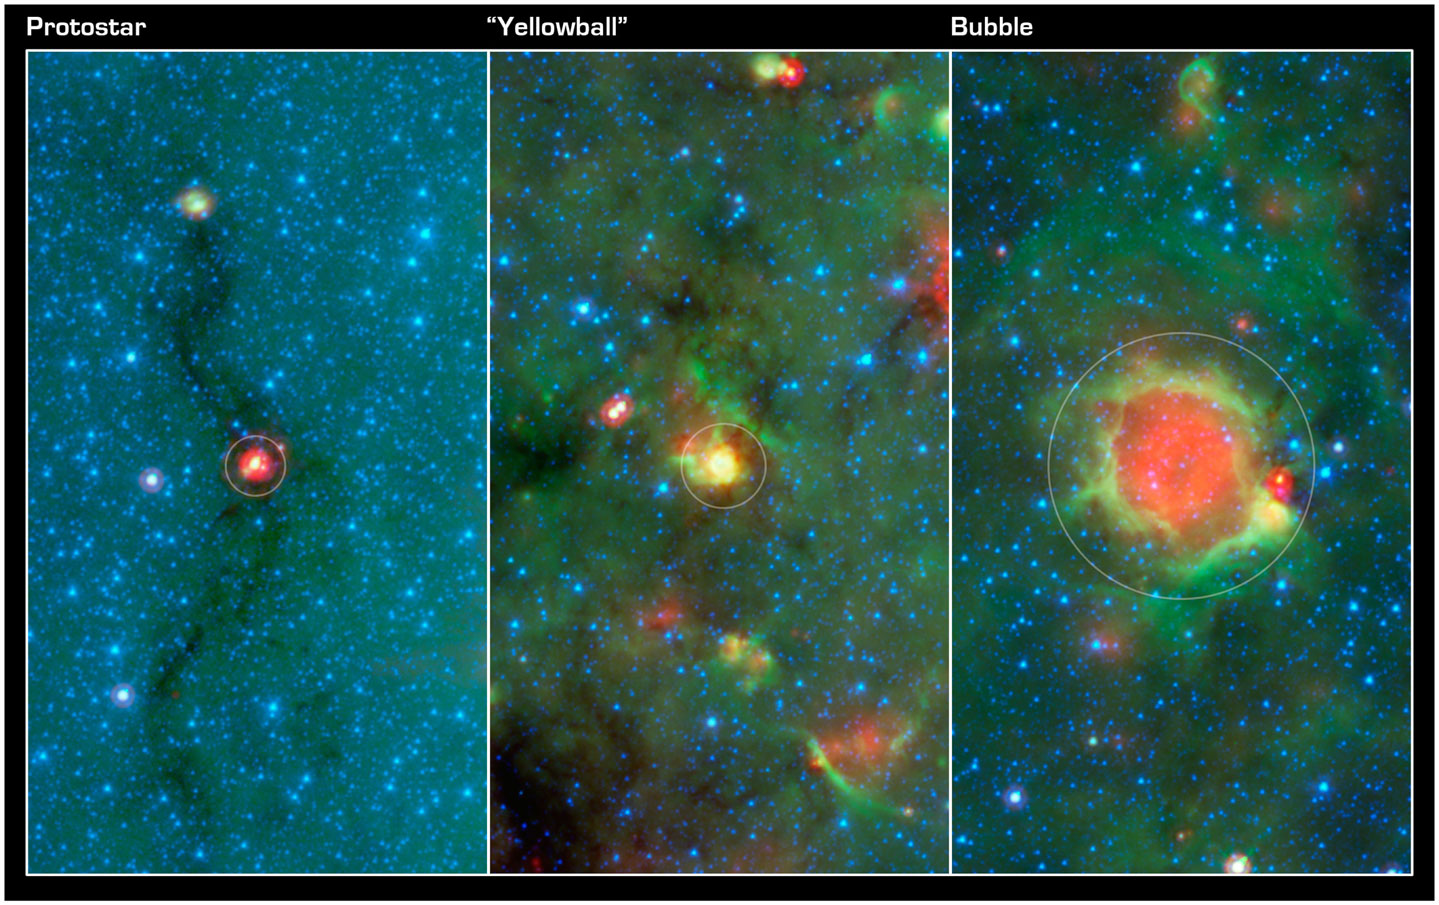 """Figure 3 - The Evolution of a Bubble. This is a sequence of images that illustrates stages in the development of a bubble around massive young stars. The """"yellowball"""" stage, identified by citizen scientists, is shown in the middle panel."""